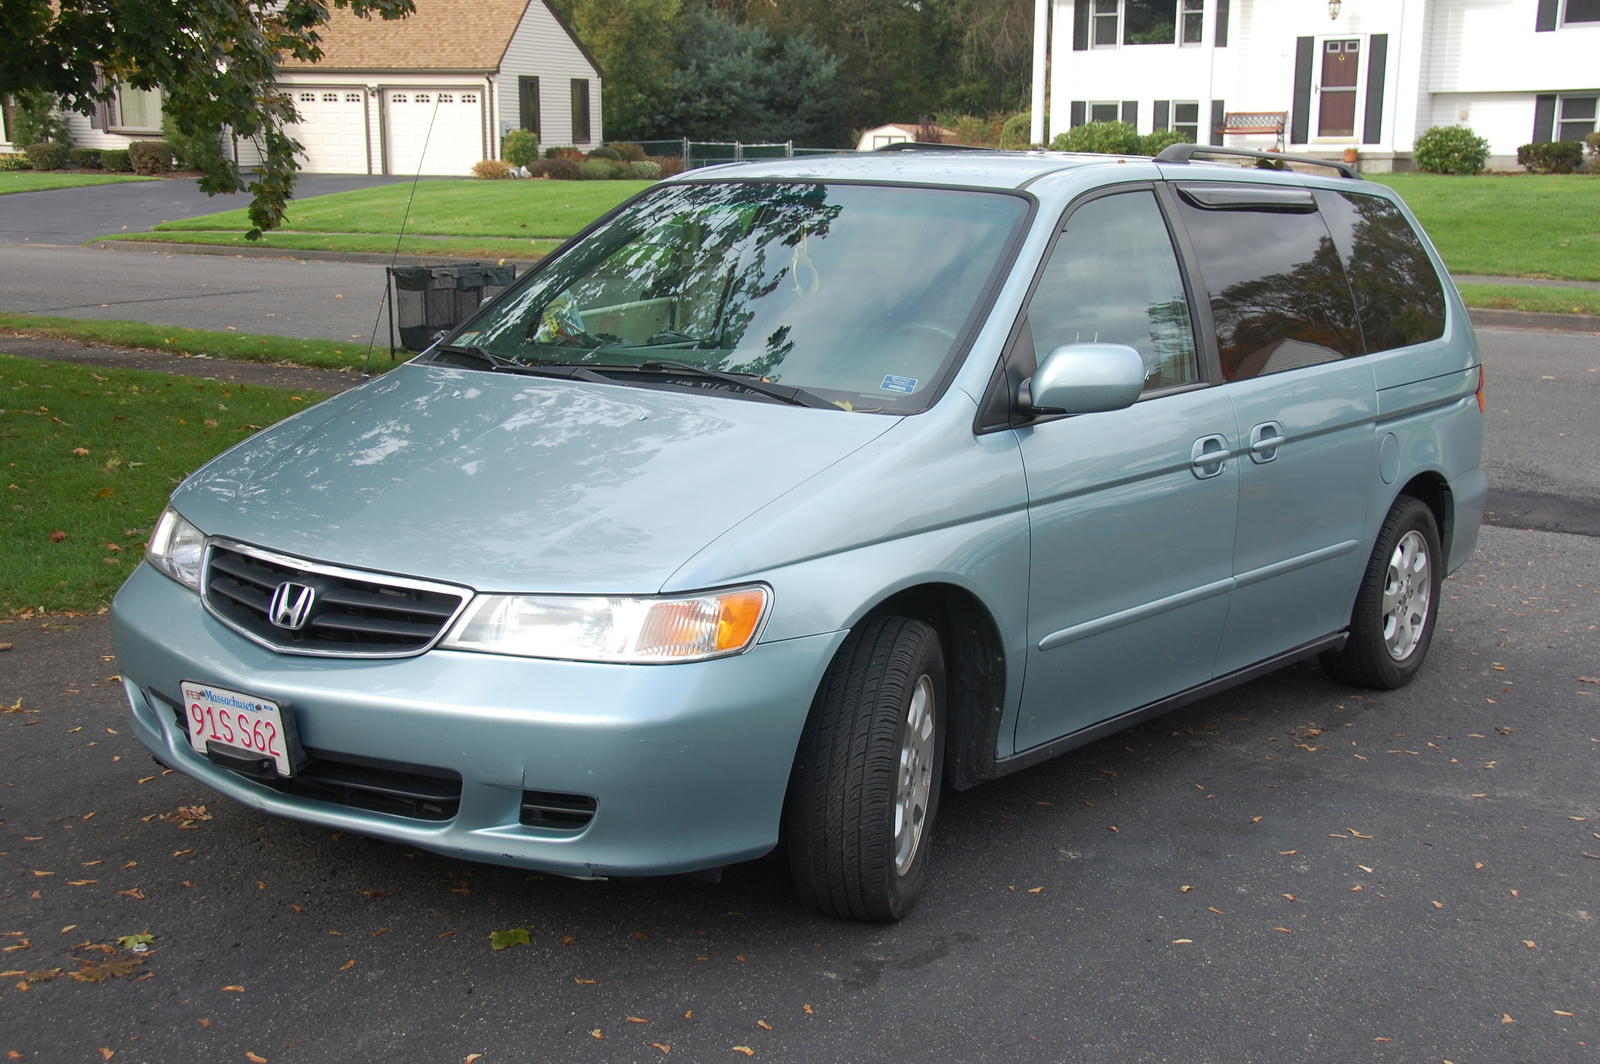 service manual how to hotwire 2003 honda odyssey. Black Bedroom Furniture Sets. Home Design Ideas